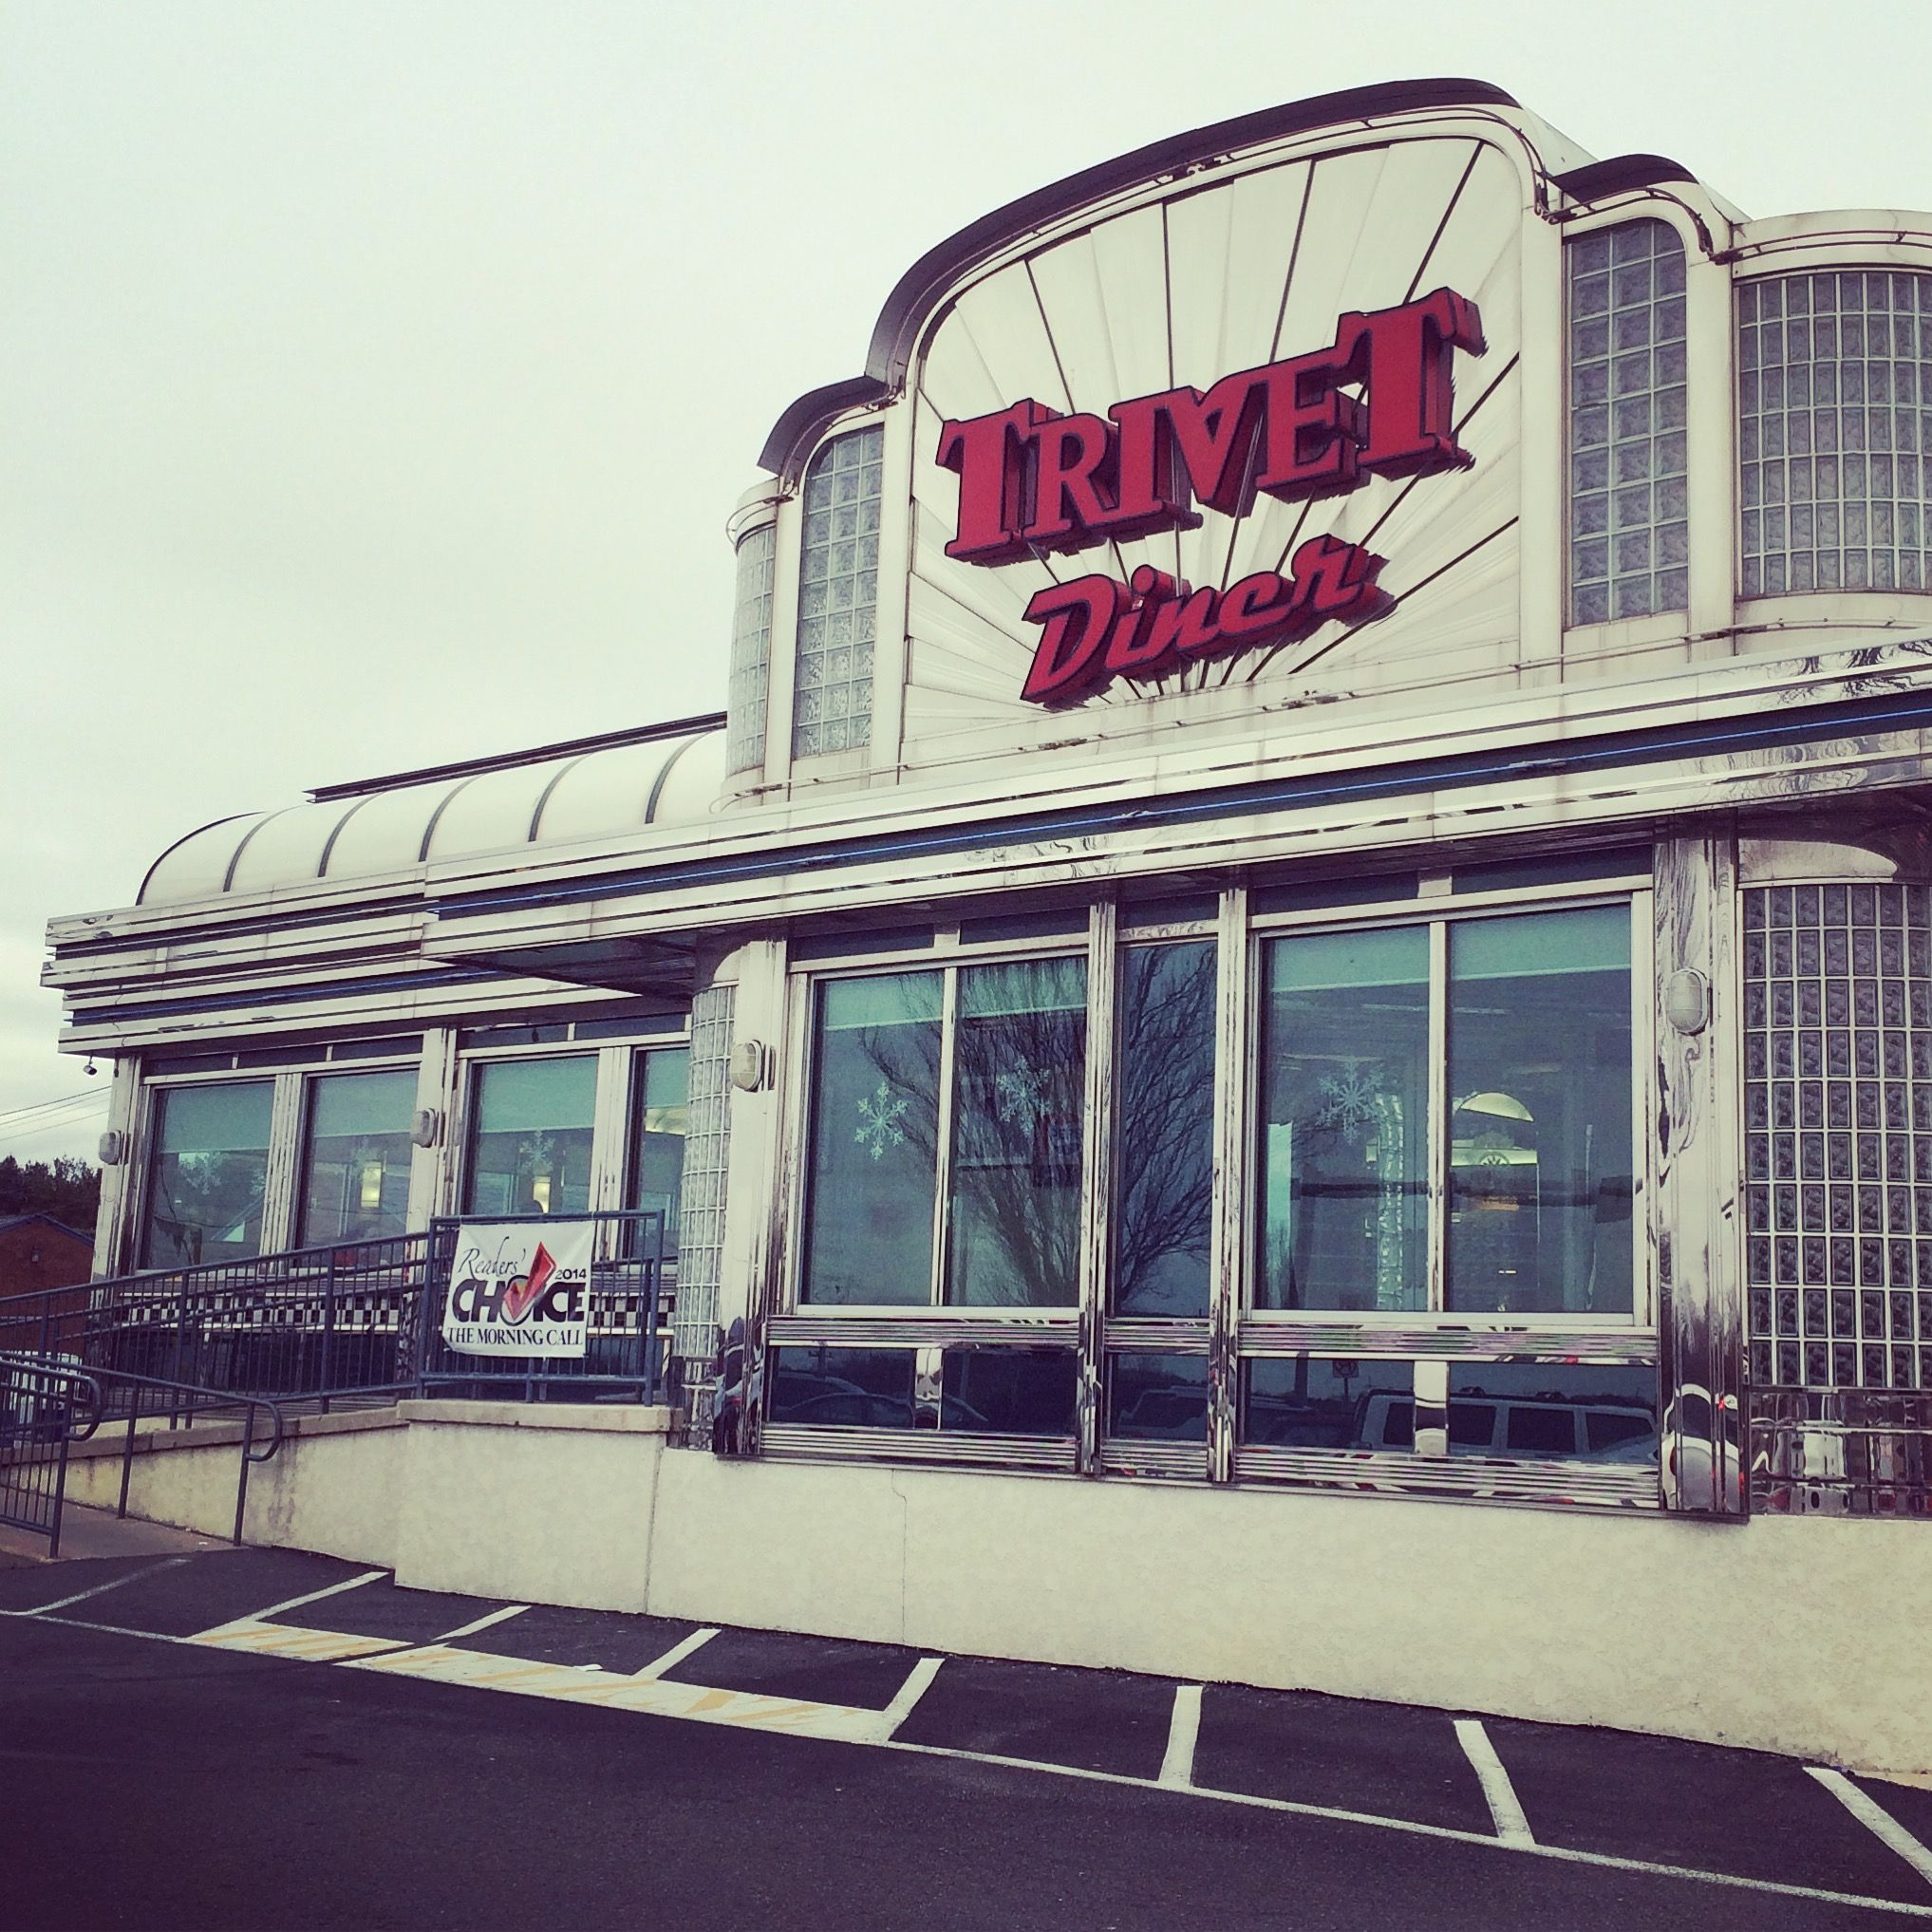 Trivet Diner South Whitehall Township (Allentown), Pa